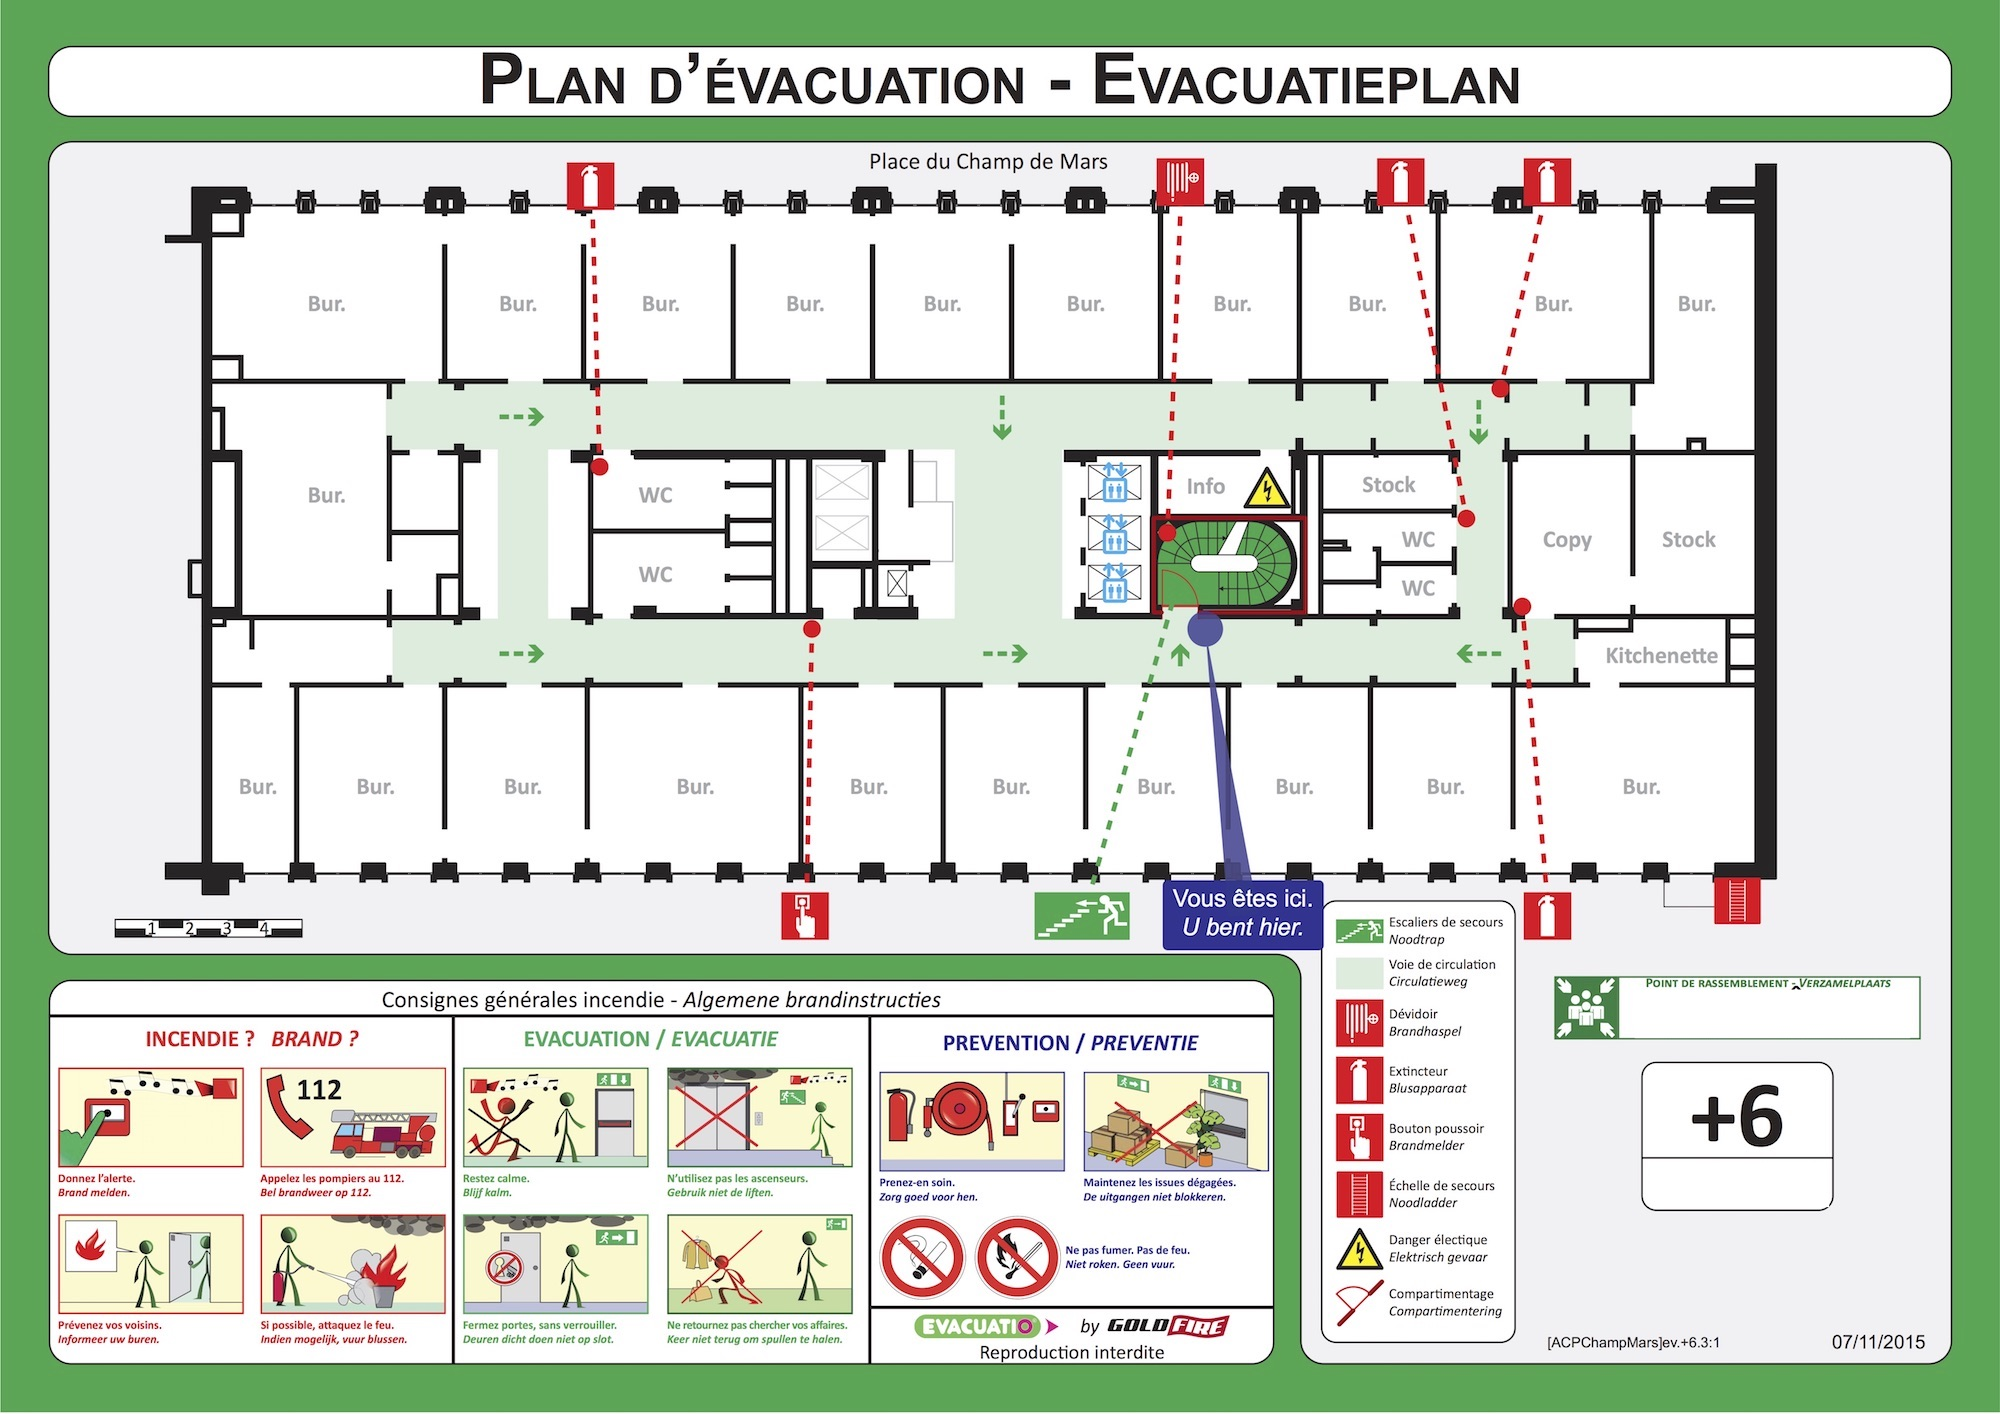 Office and administration evacuation plan